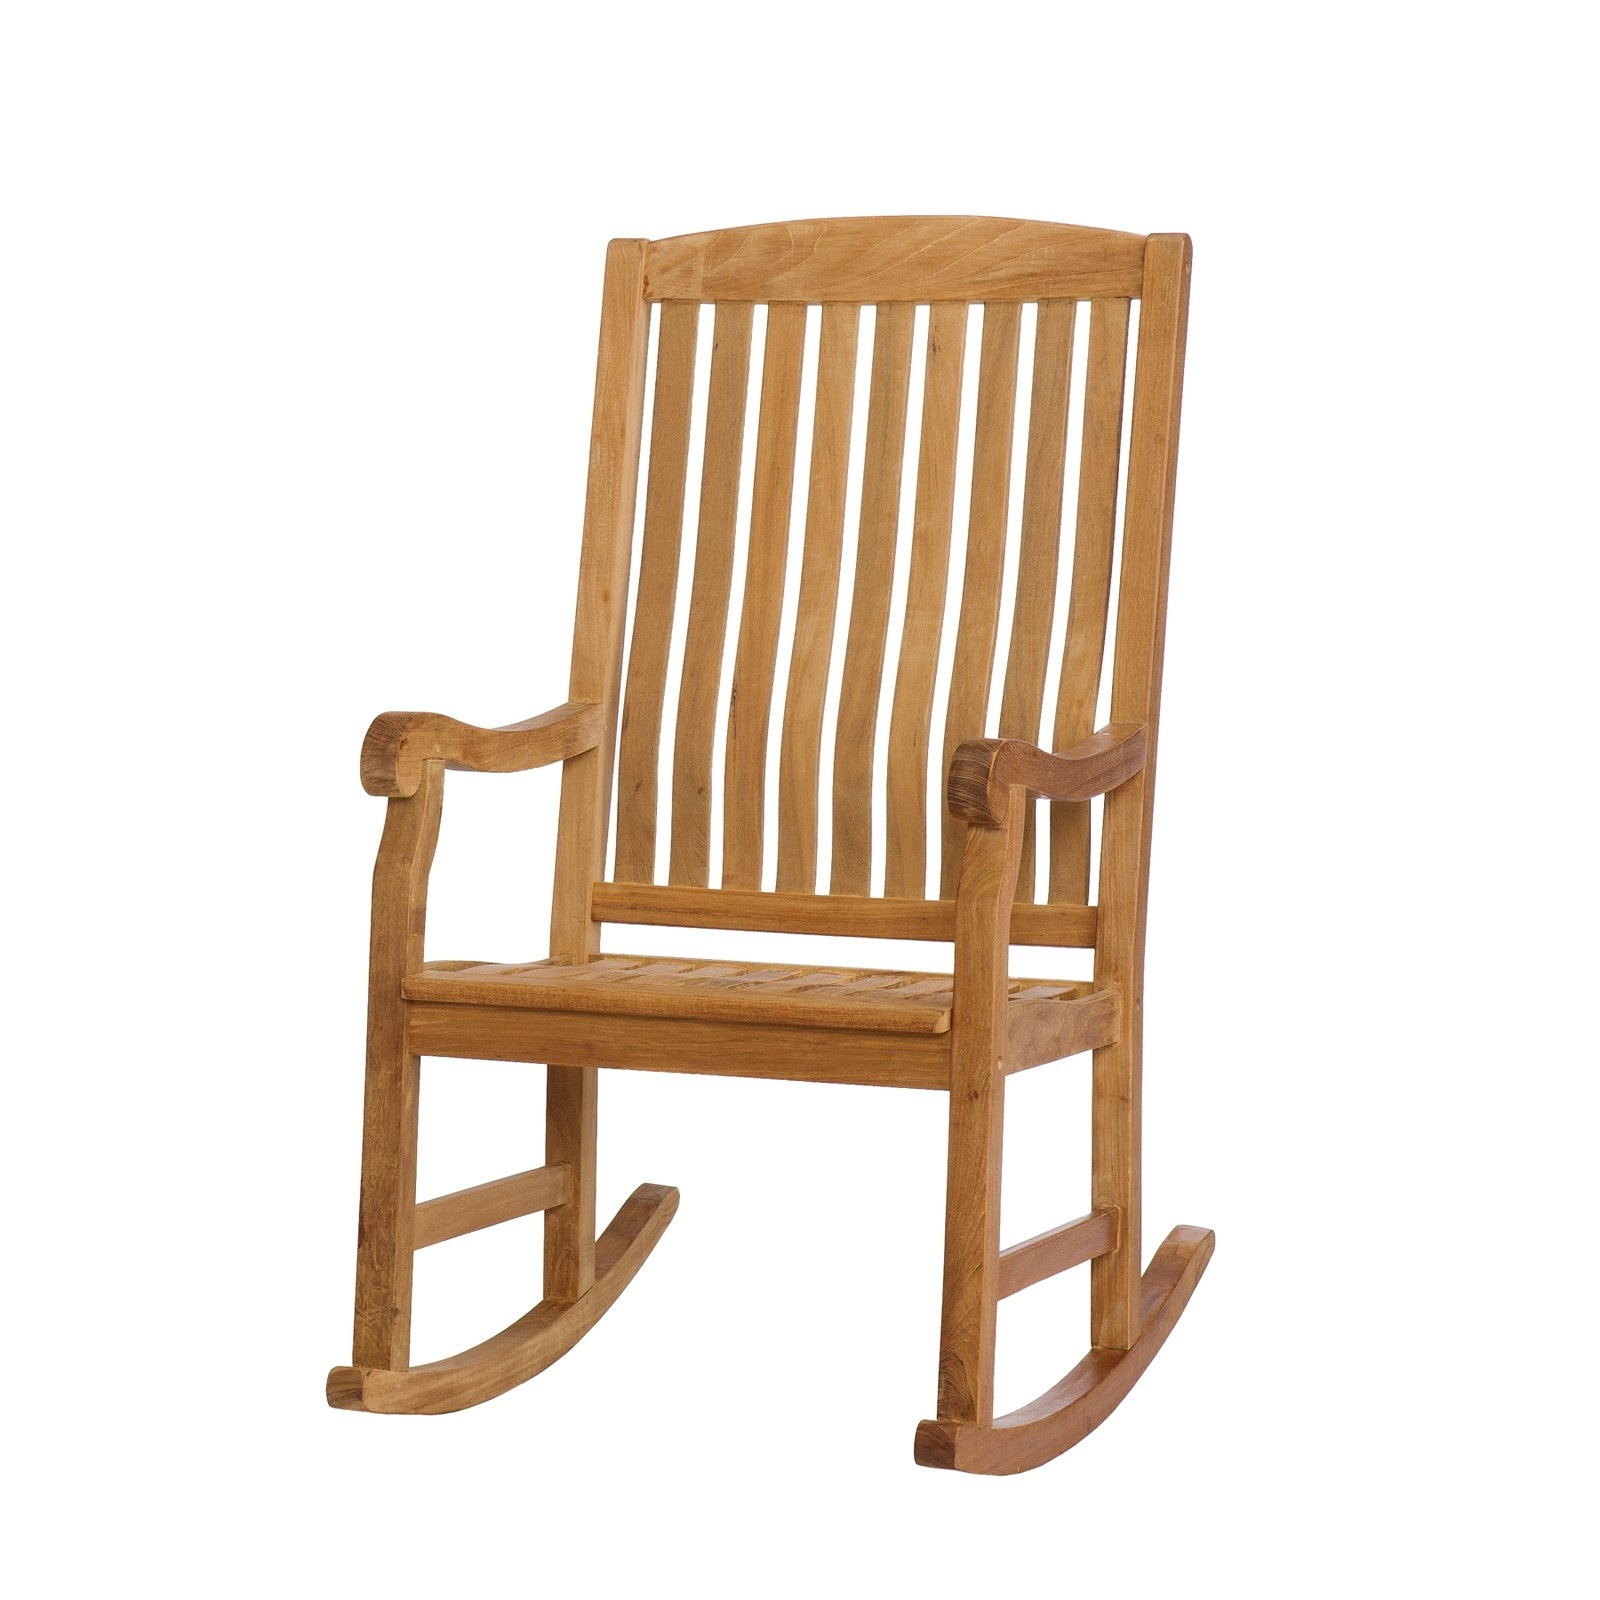 Widely Used Folding Rocking Chairs Amazon Stunning Chair Images Ideas Best Regarding Amazon Rocking Chairs (View 15 of 15)